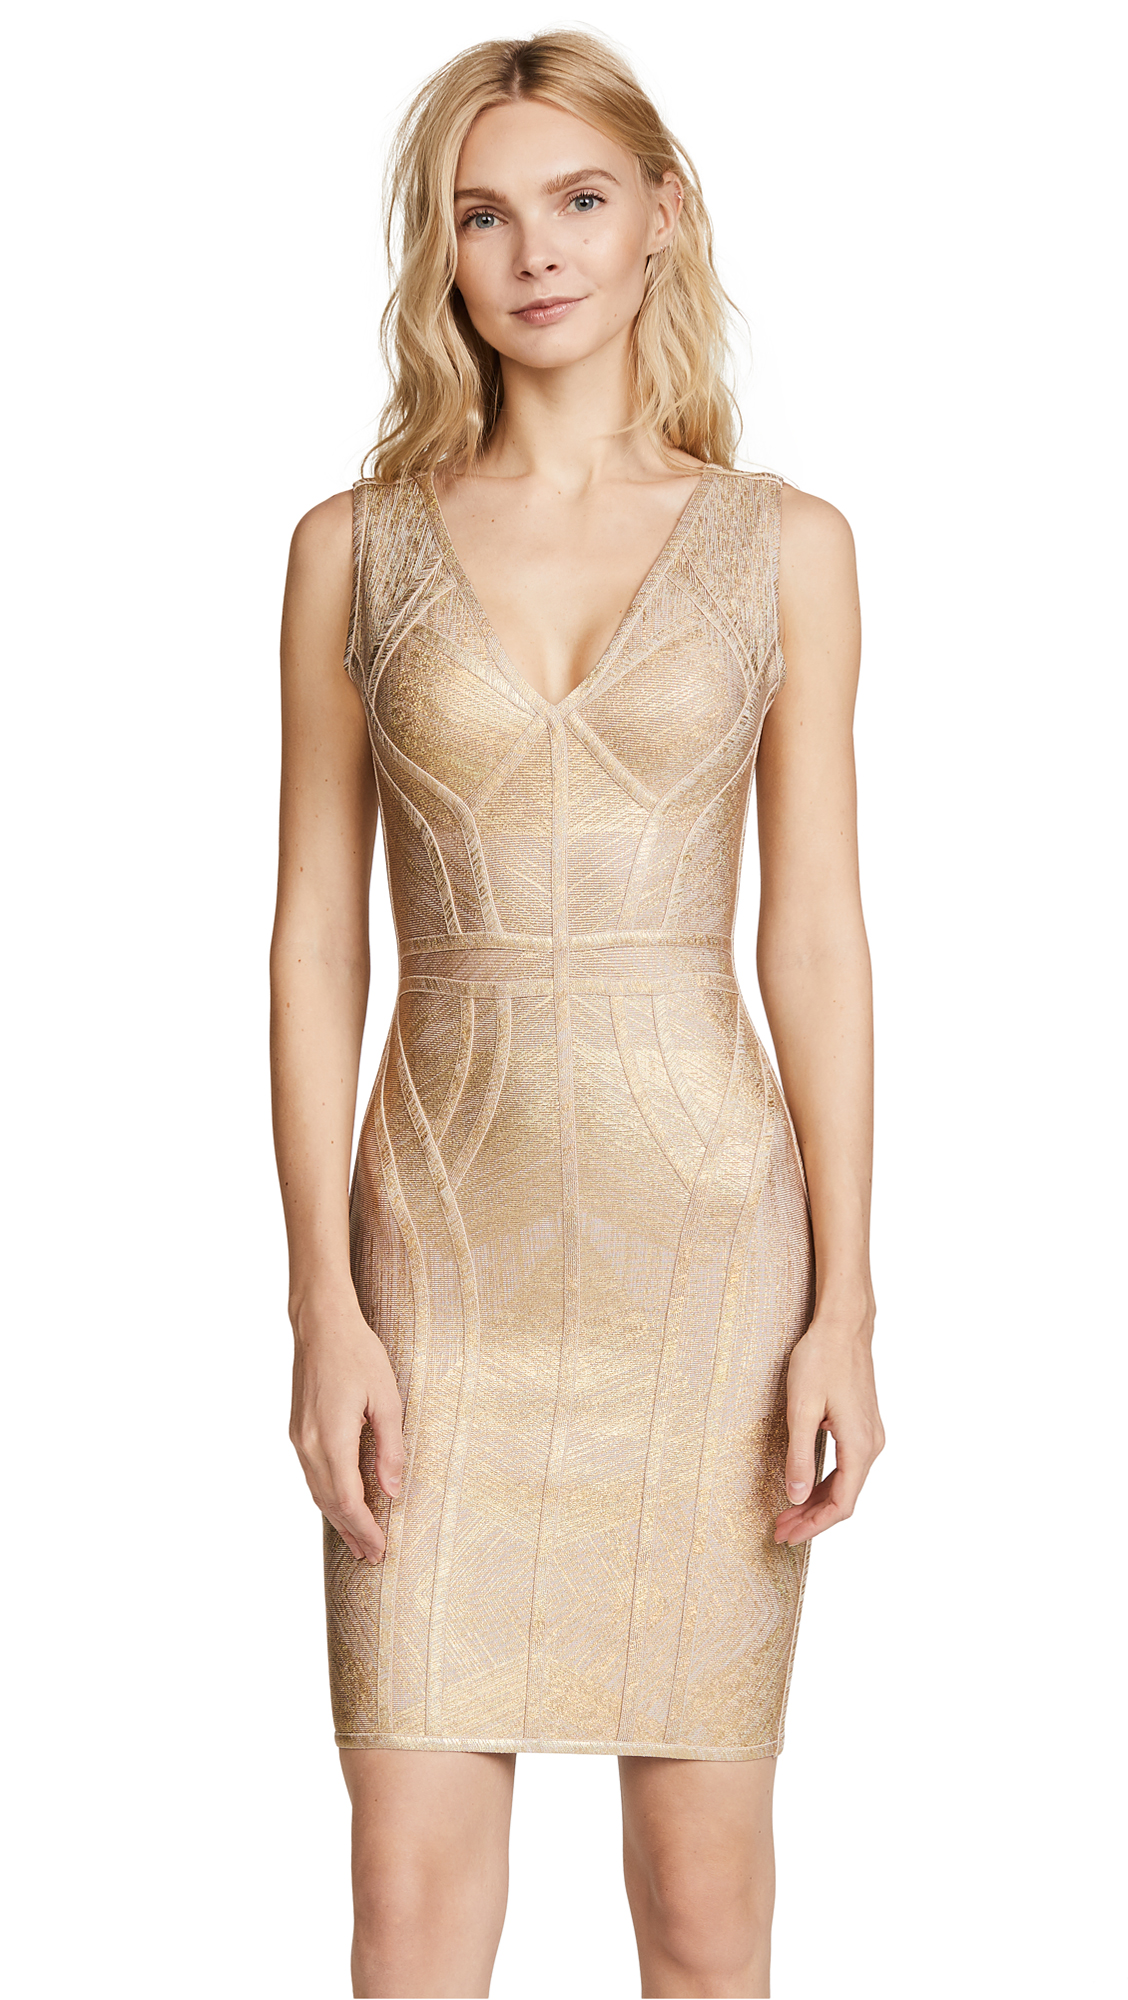 Herve Leger V Neck Above Knee Dress - Gold